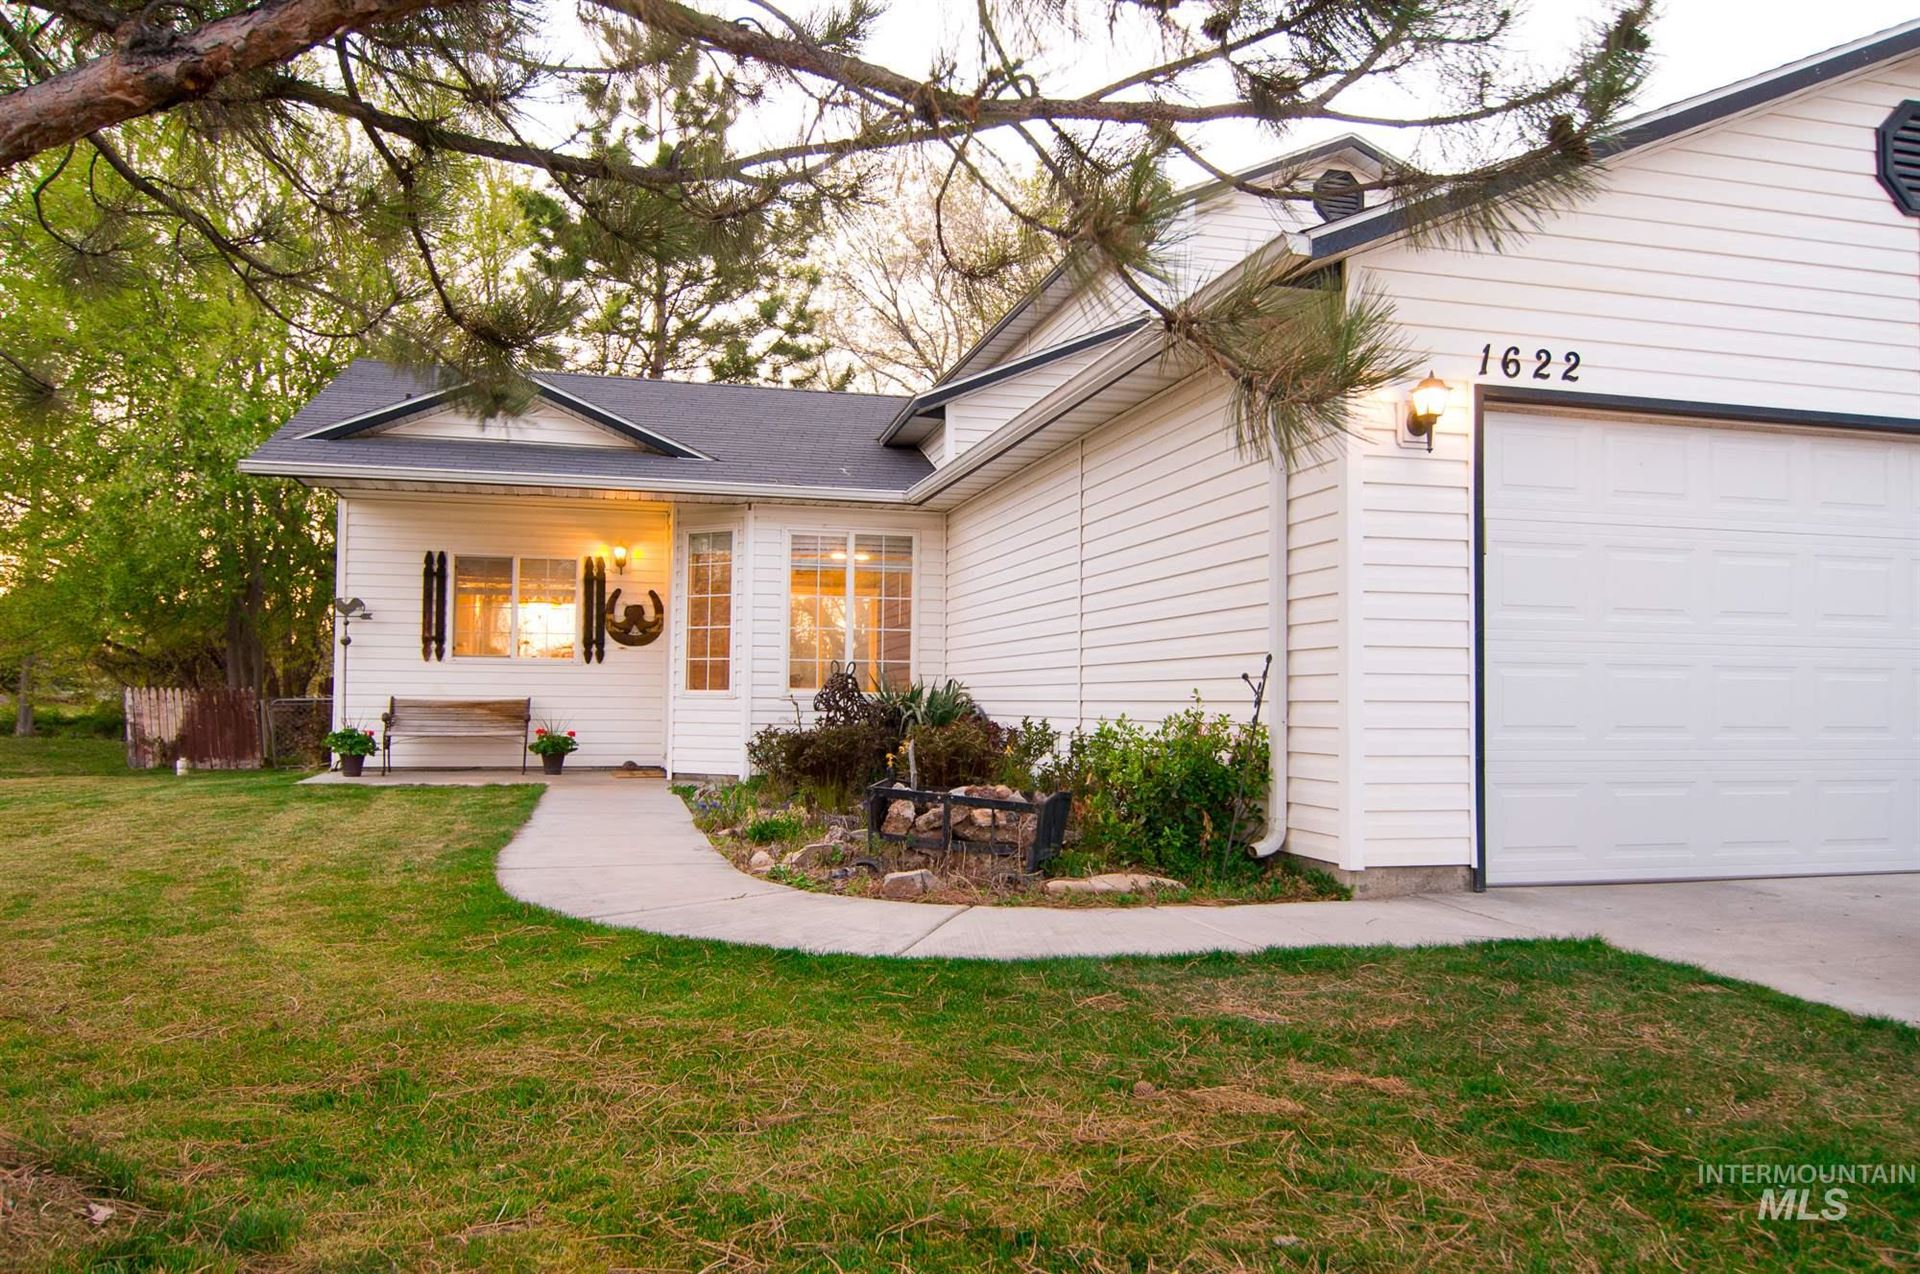 Photo of 1622 Crest Ave., Caldwell, ID 83605 (MLS # 98799181)